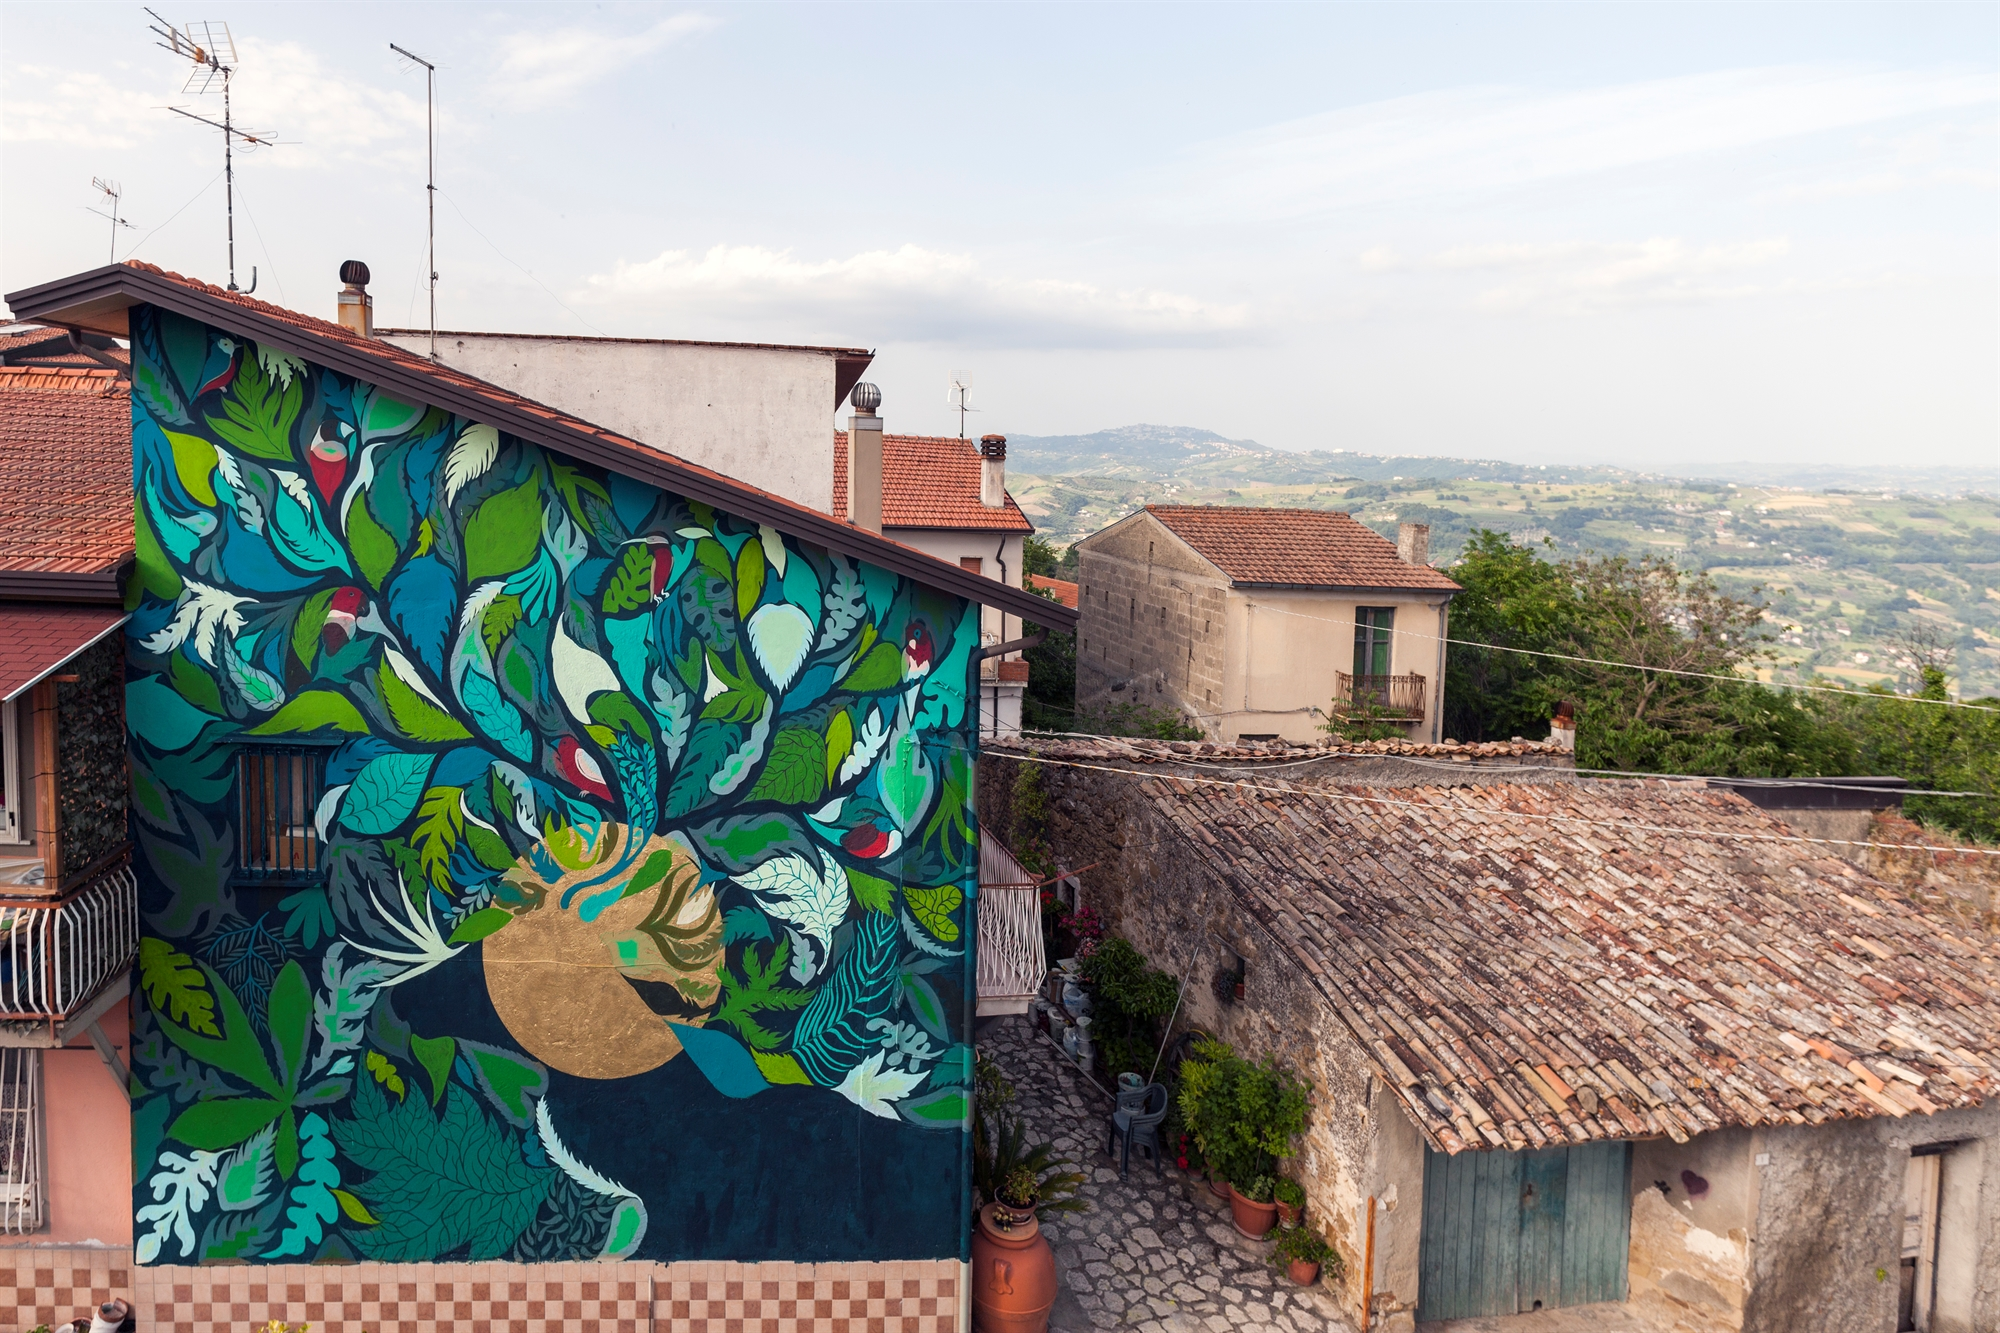 5 street artists meet the art of Salvatore Ferragamo